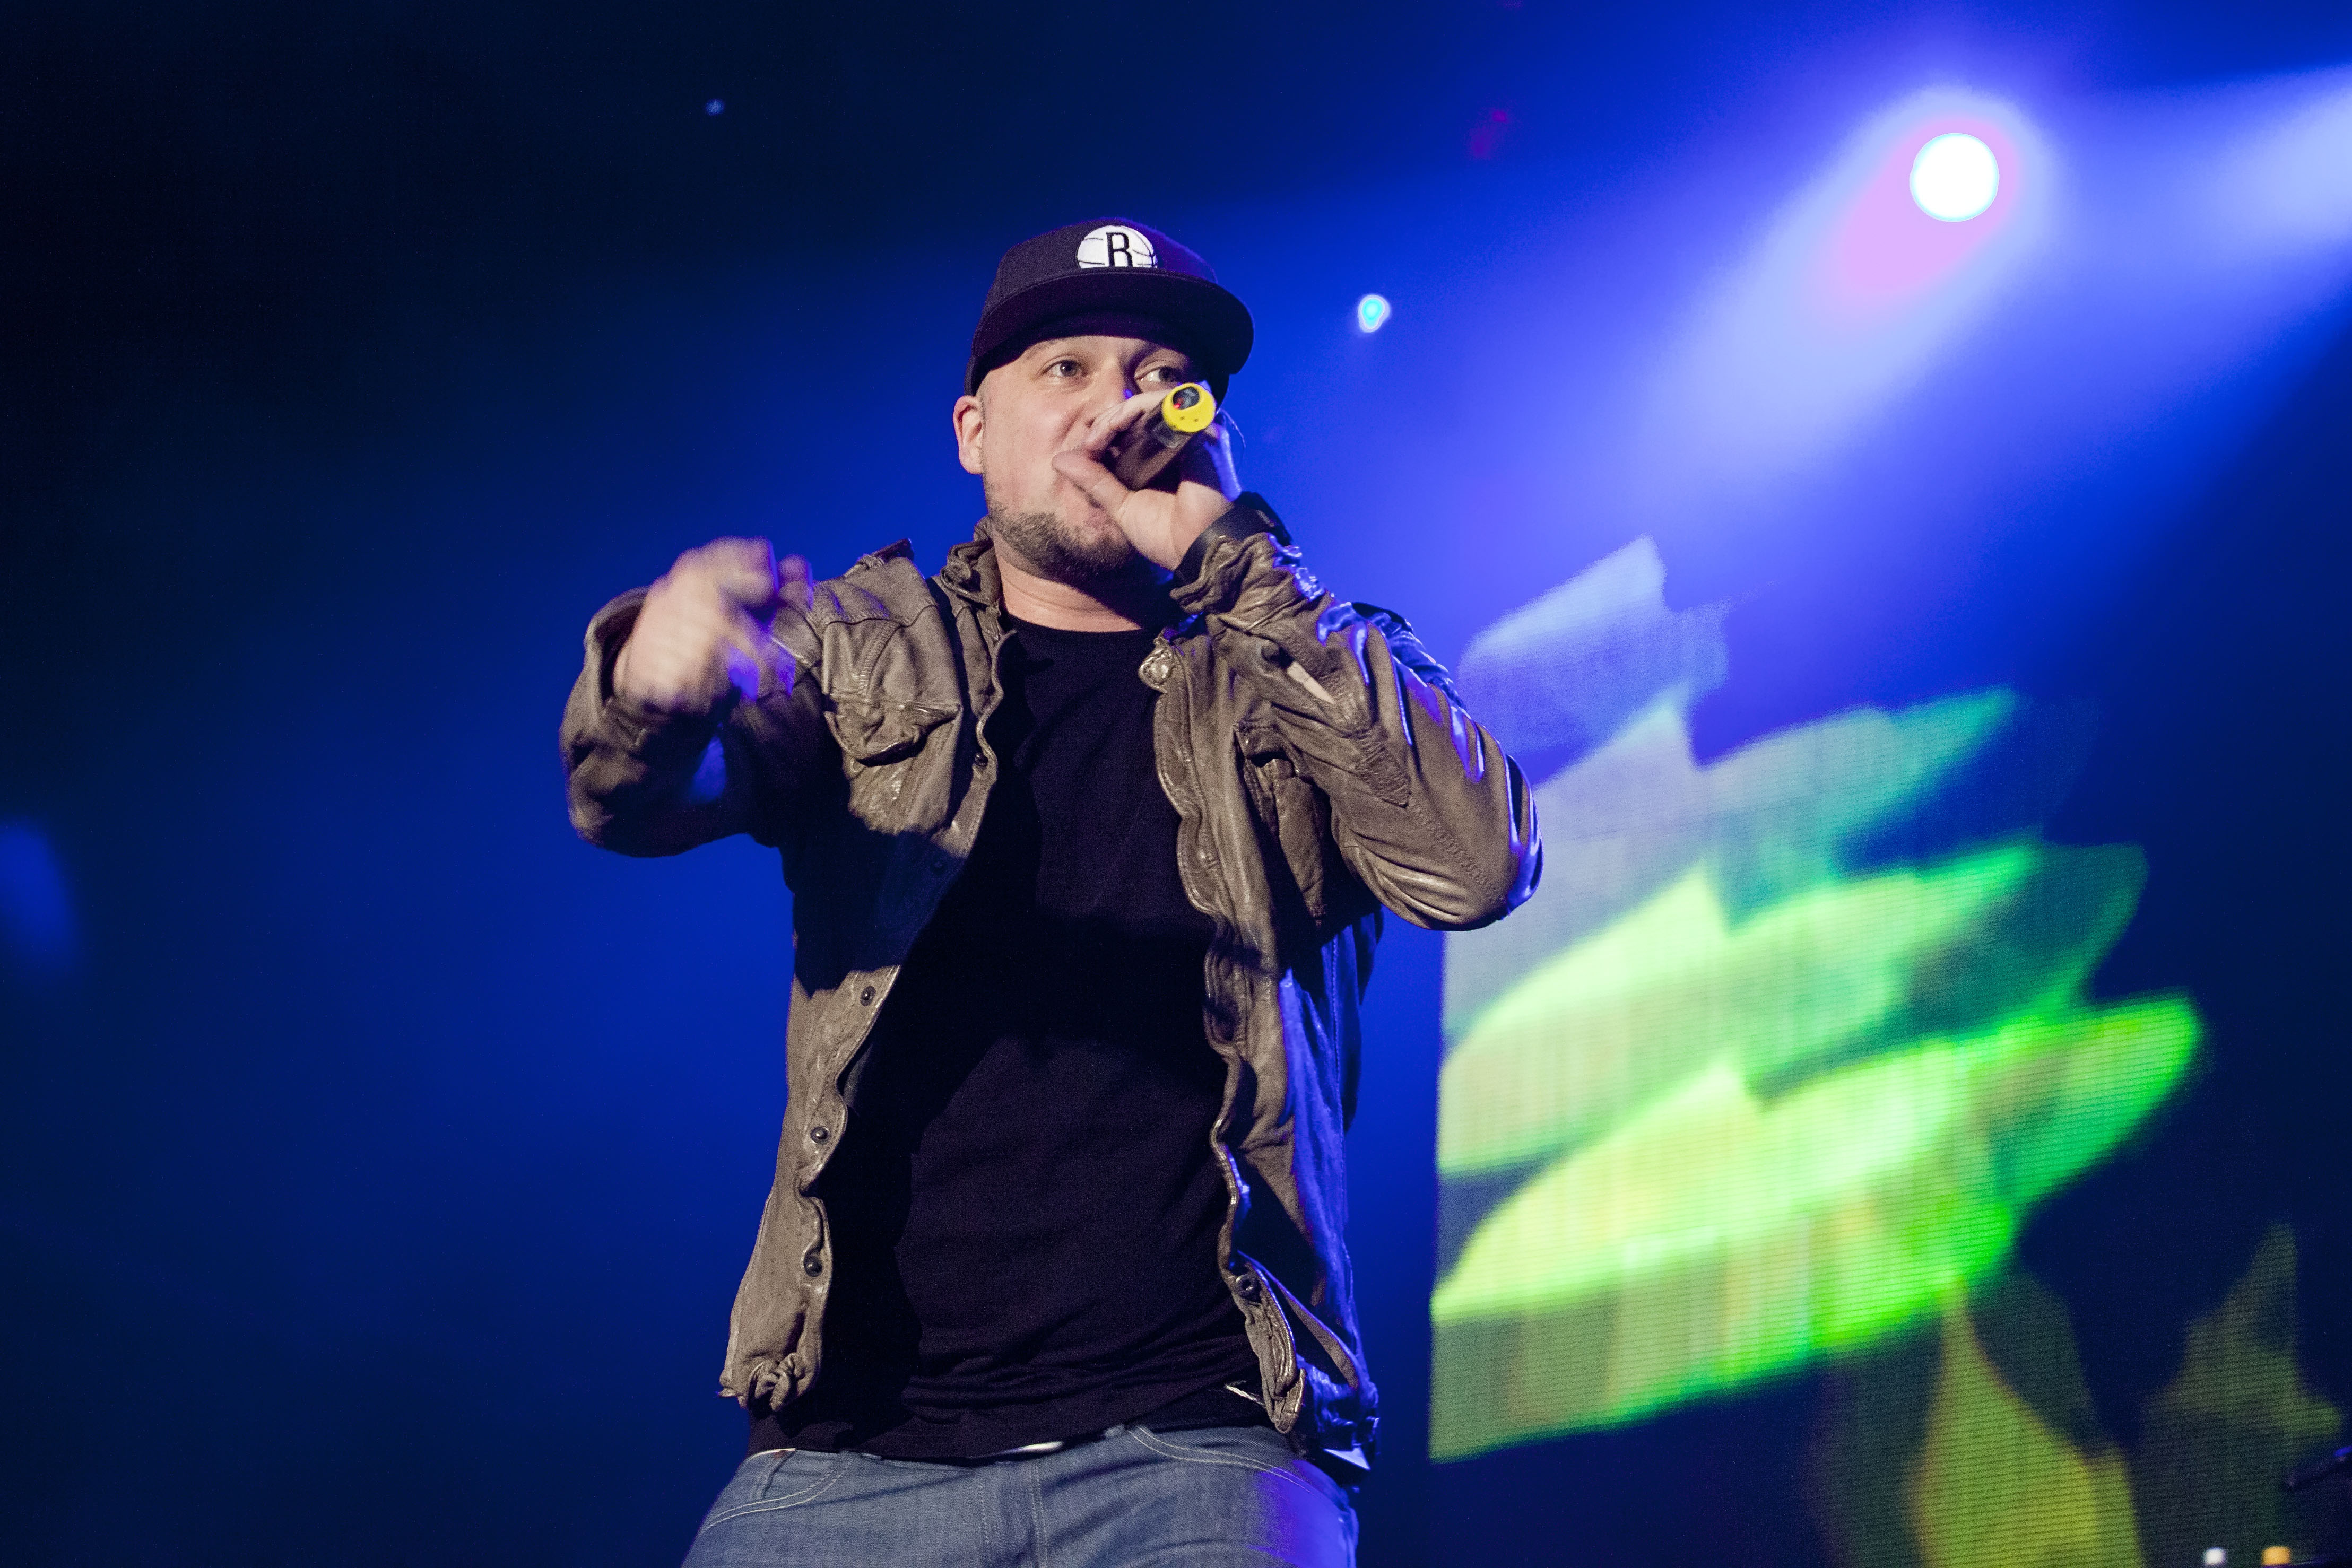 BERLIN, GERMANY - AUGUST 30: Singer Kool Savas of Xavas performs live during a concert at the Zitadelle Spandau on August 30,